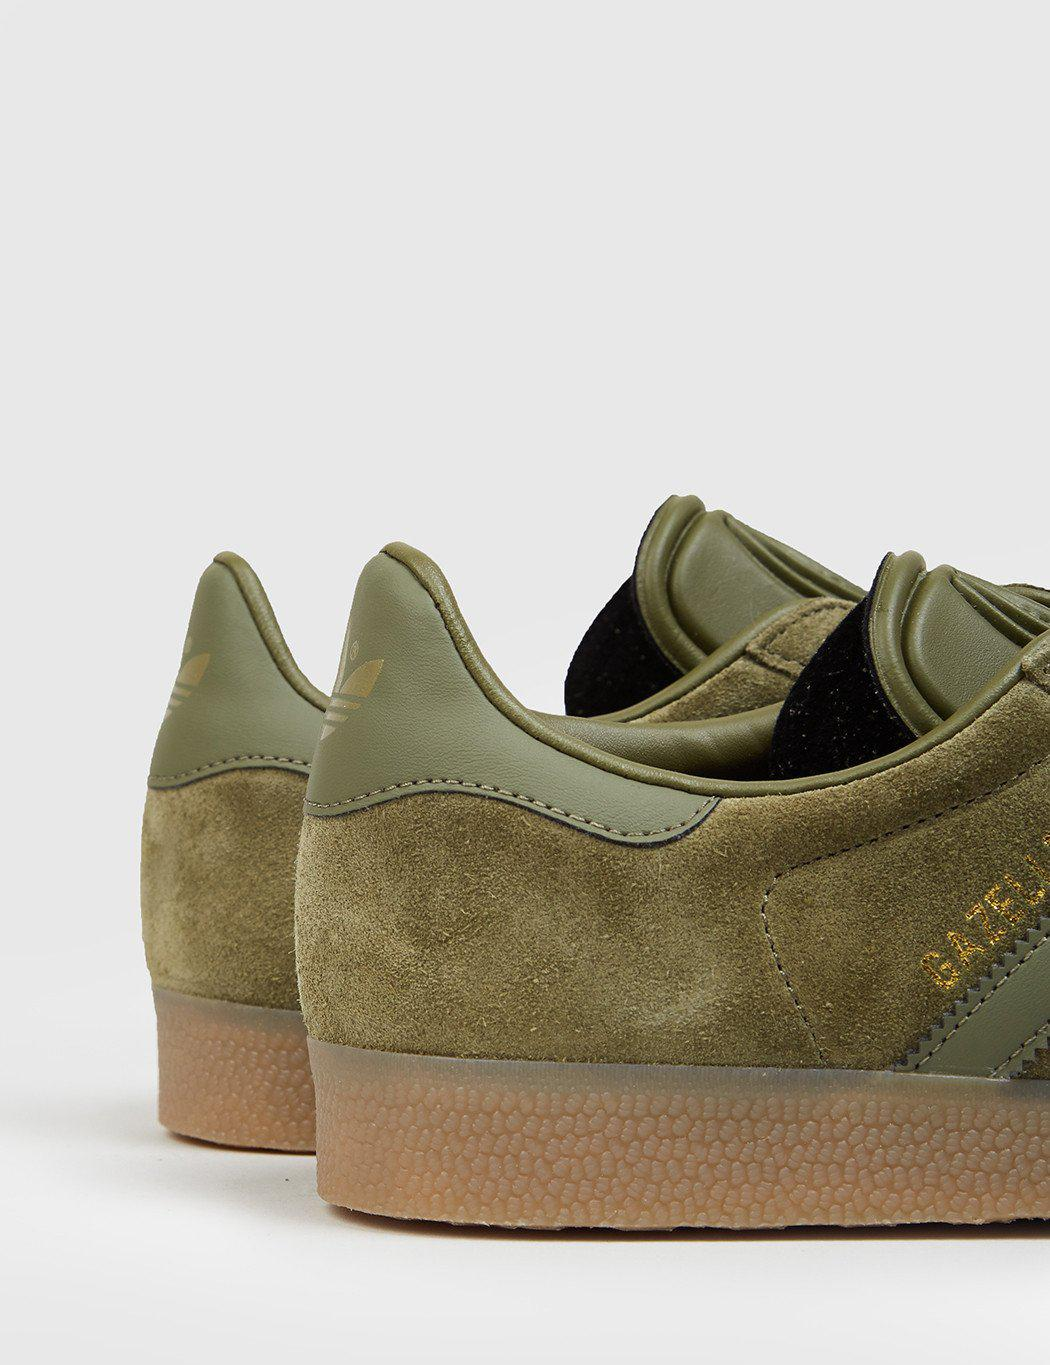 Adidas Gazelle Suede Shoes Olive Cargo Bb